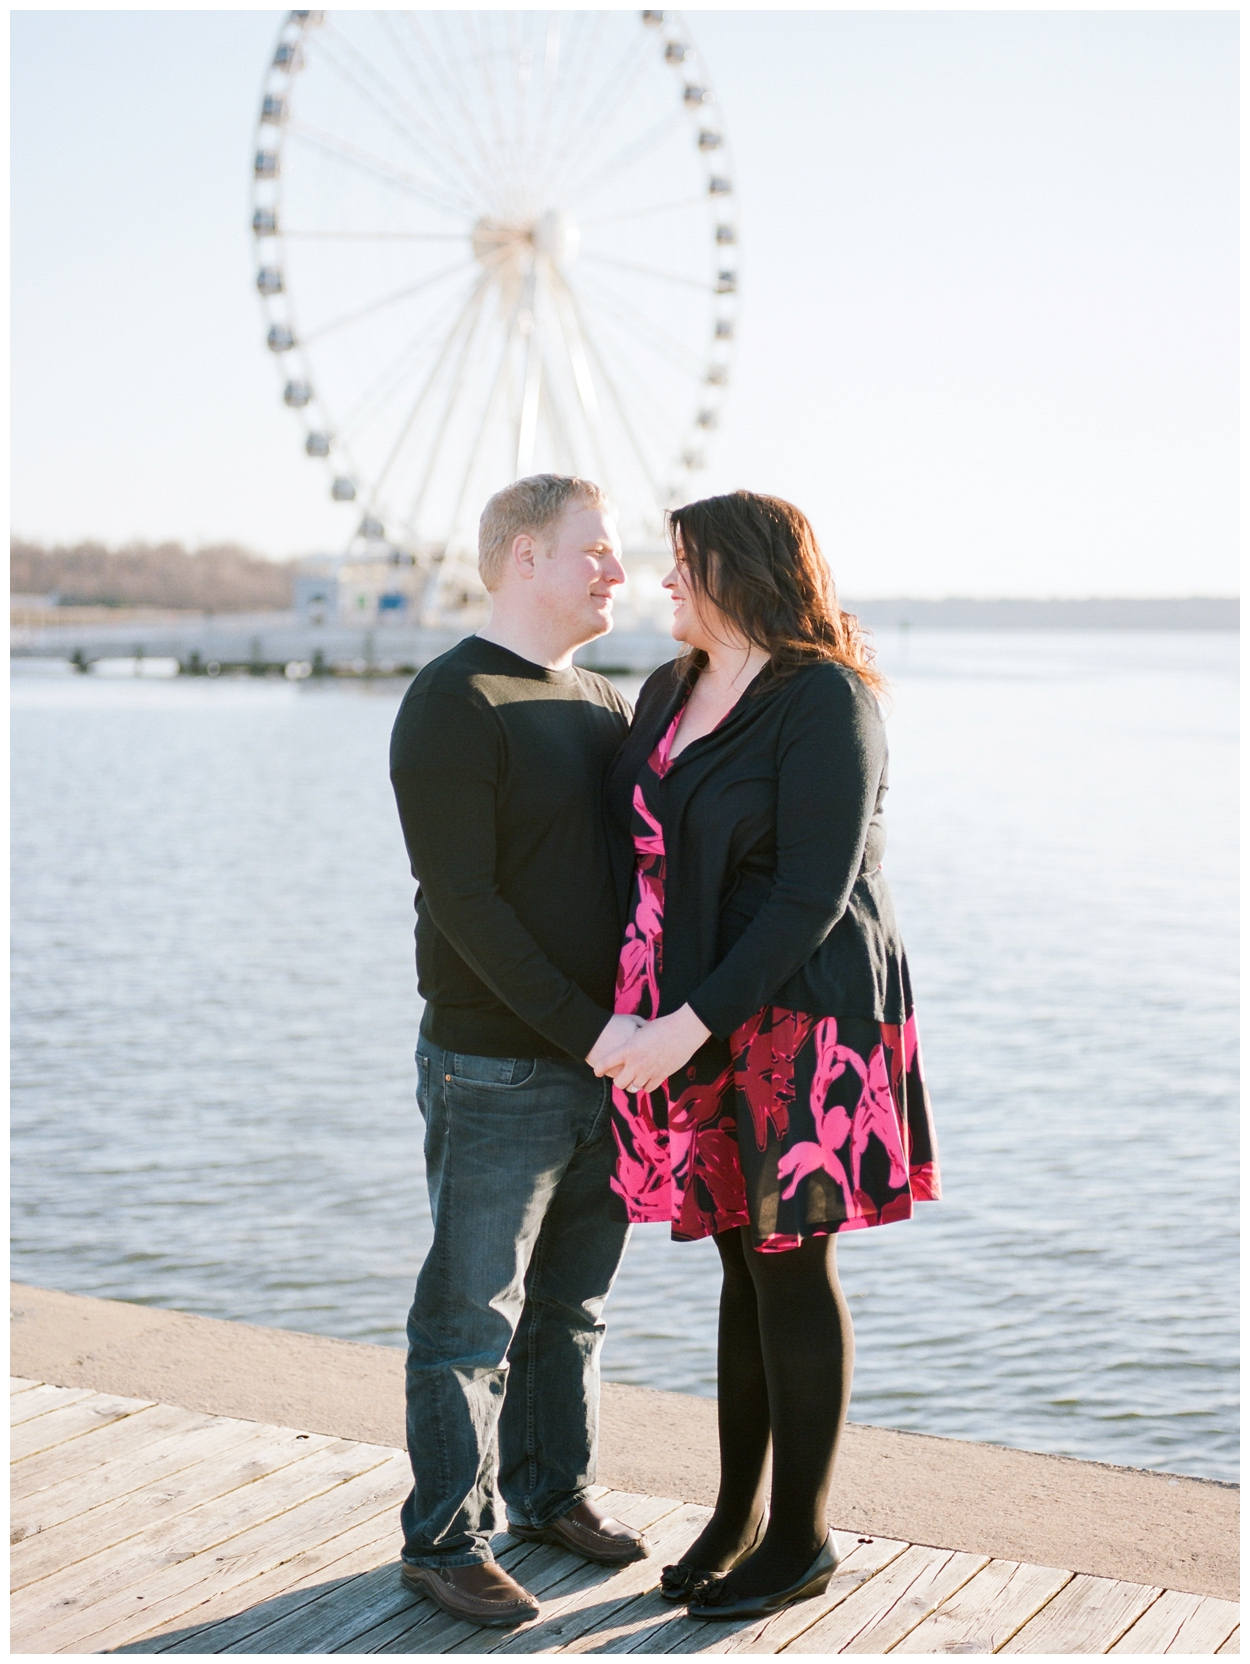 sunset spring engagement photos at National Harbor Maryland by fine art wedding photographer Lissa Ryan Photography